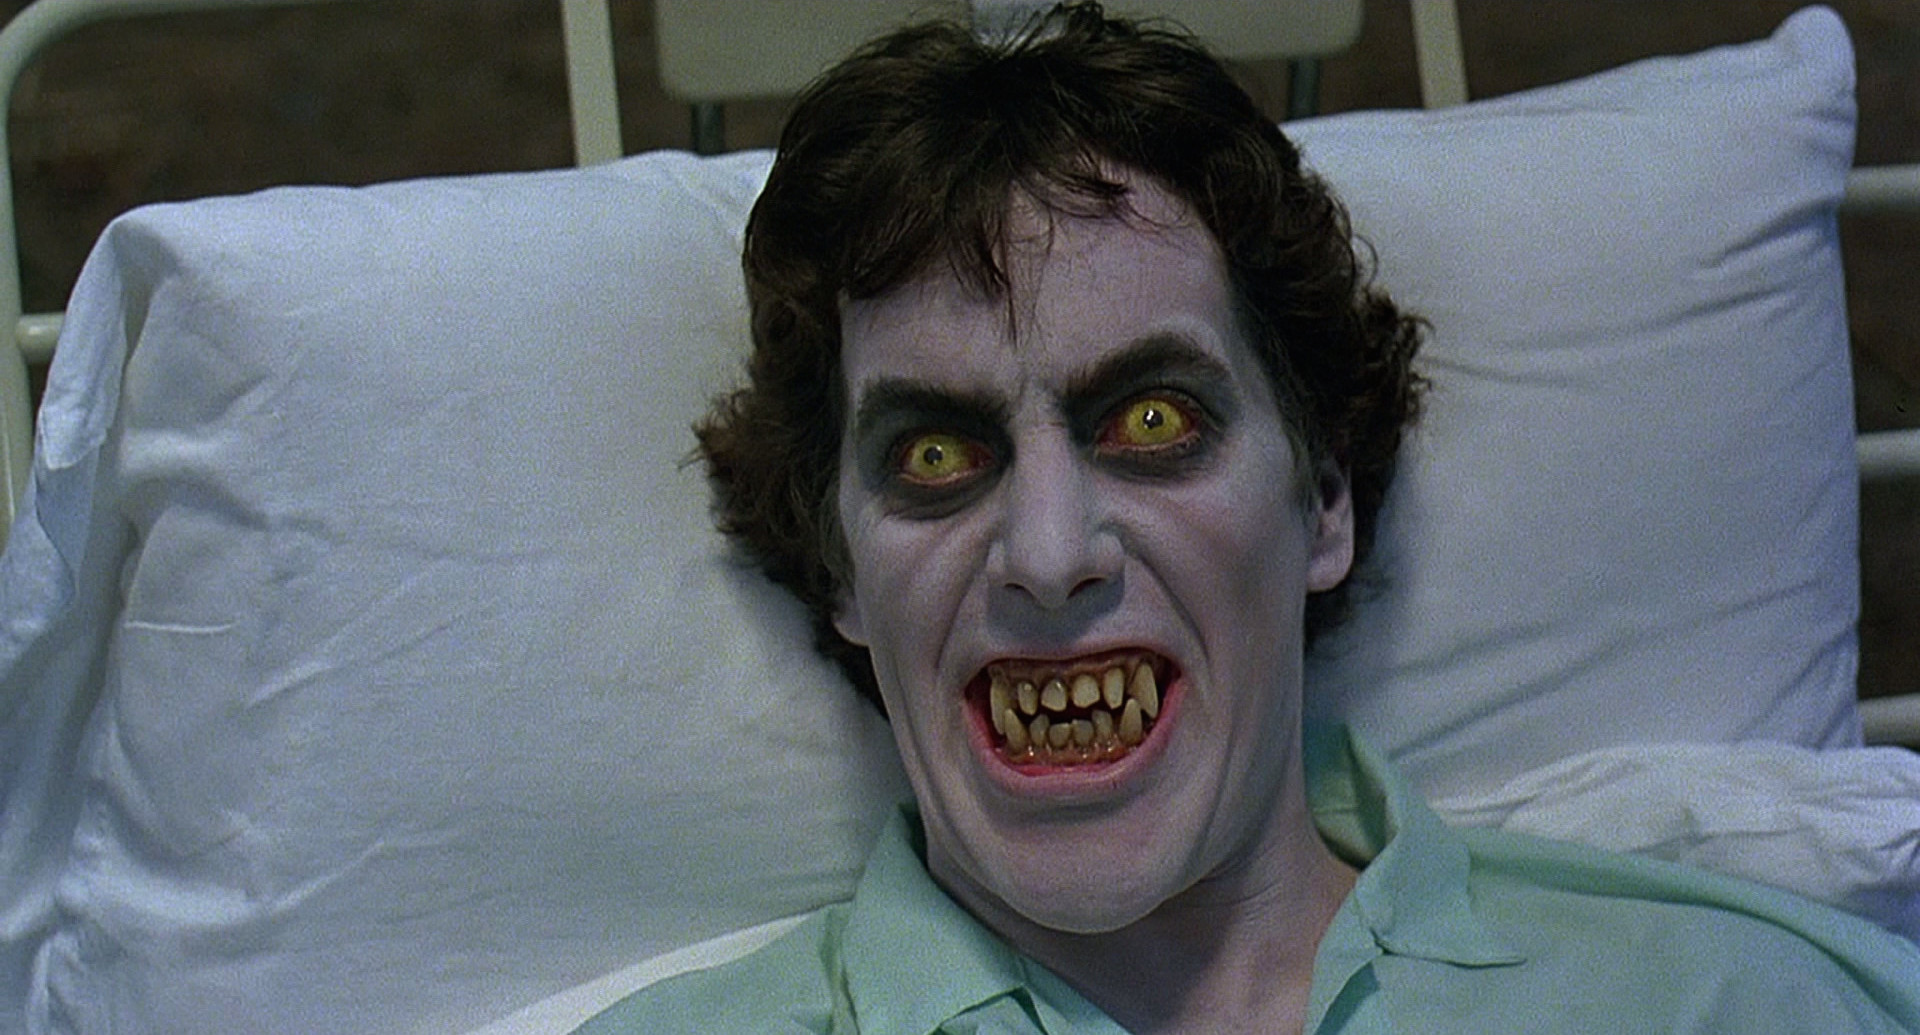 Best 1980s Horror Movies Ranked: From Evil Dead to C H U D